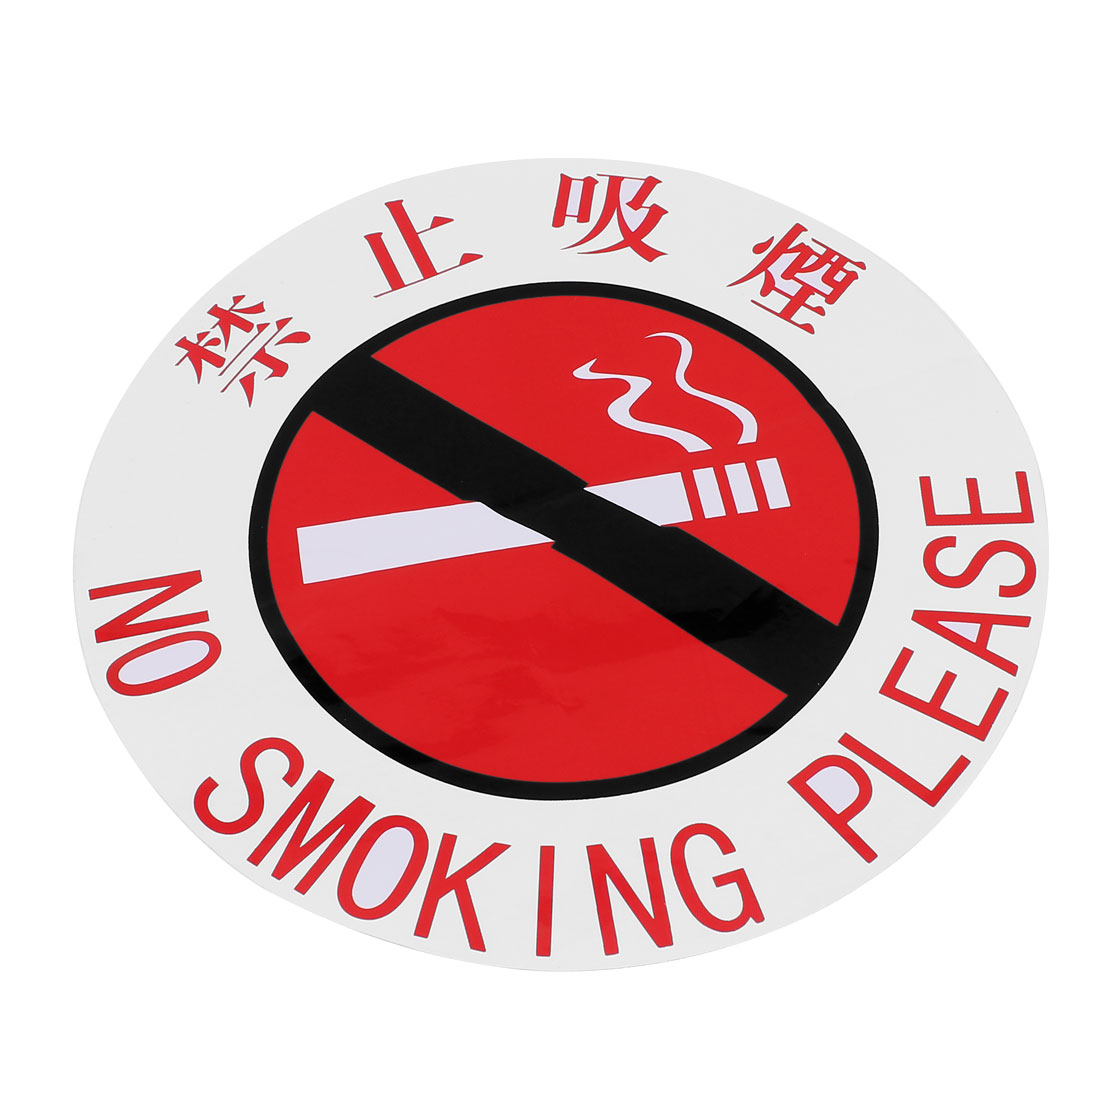 22cm Dia Plastic Round Shape No Smoking Please Door Window Sign Warning Caution Sticker Decal